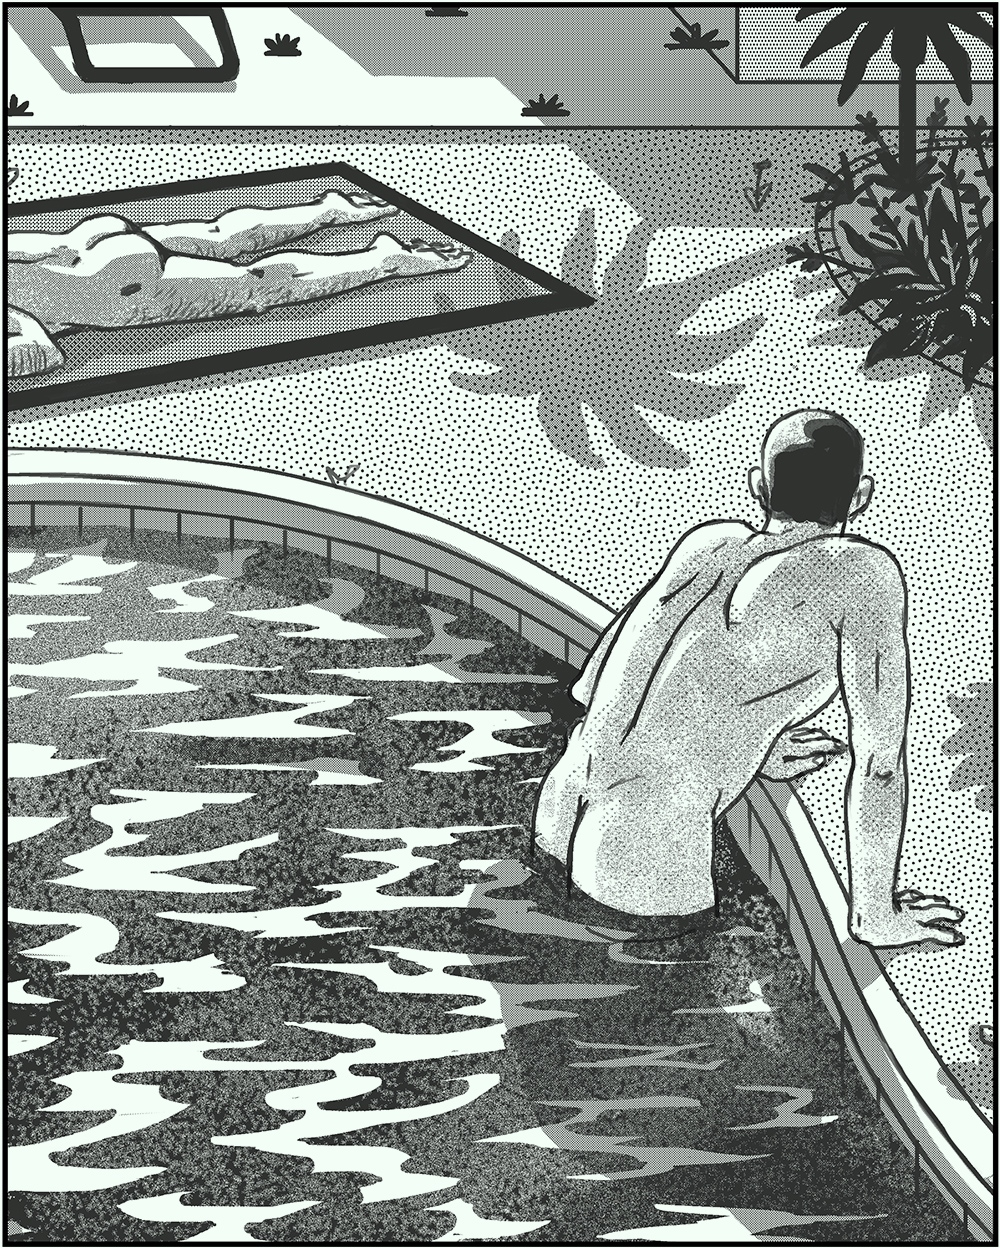 Pool_BW2_small.jpg